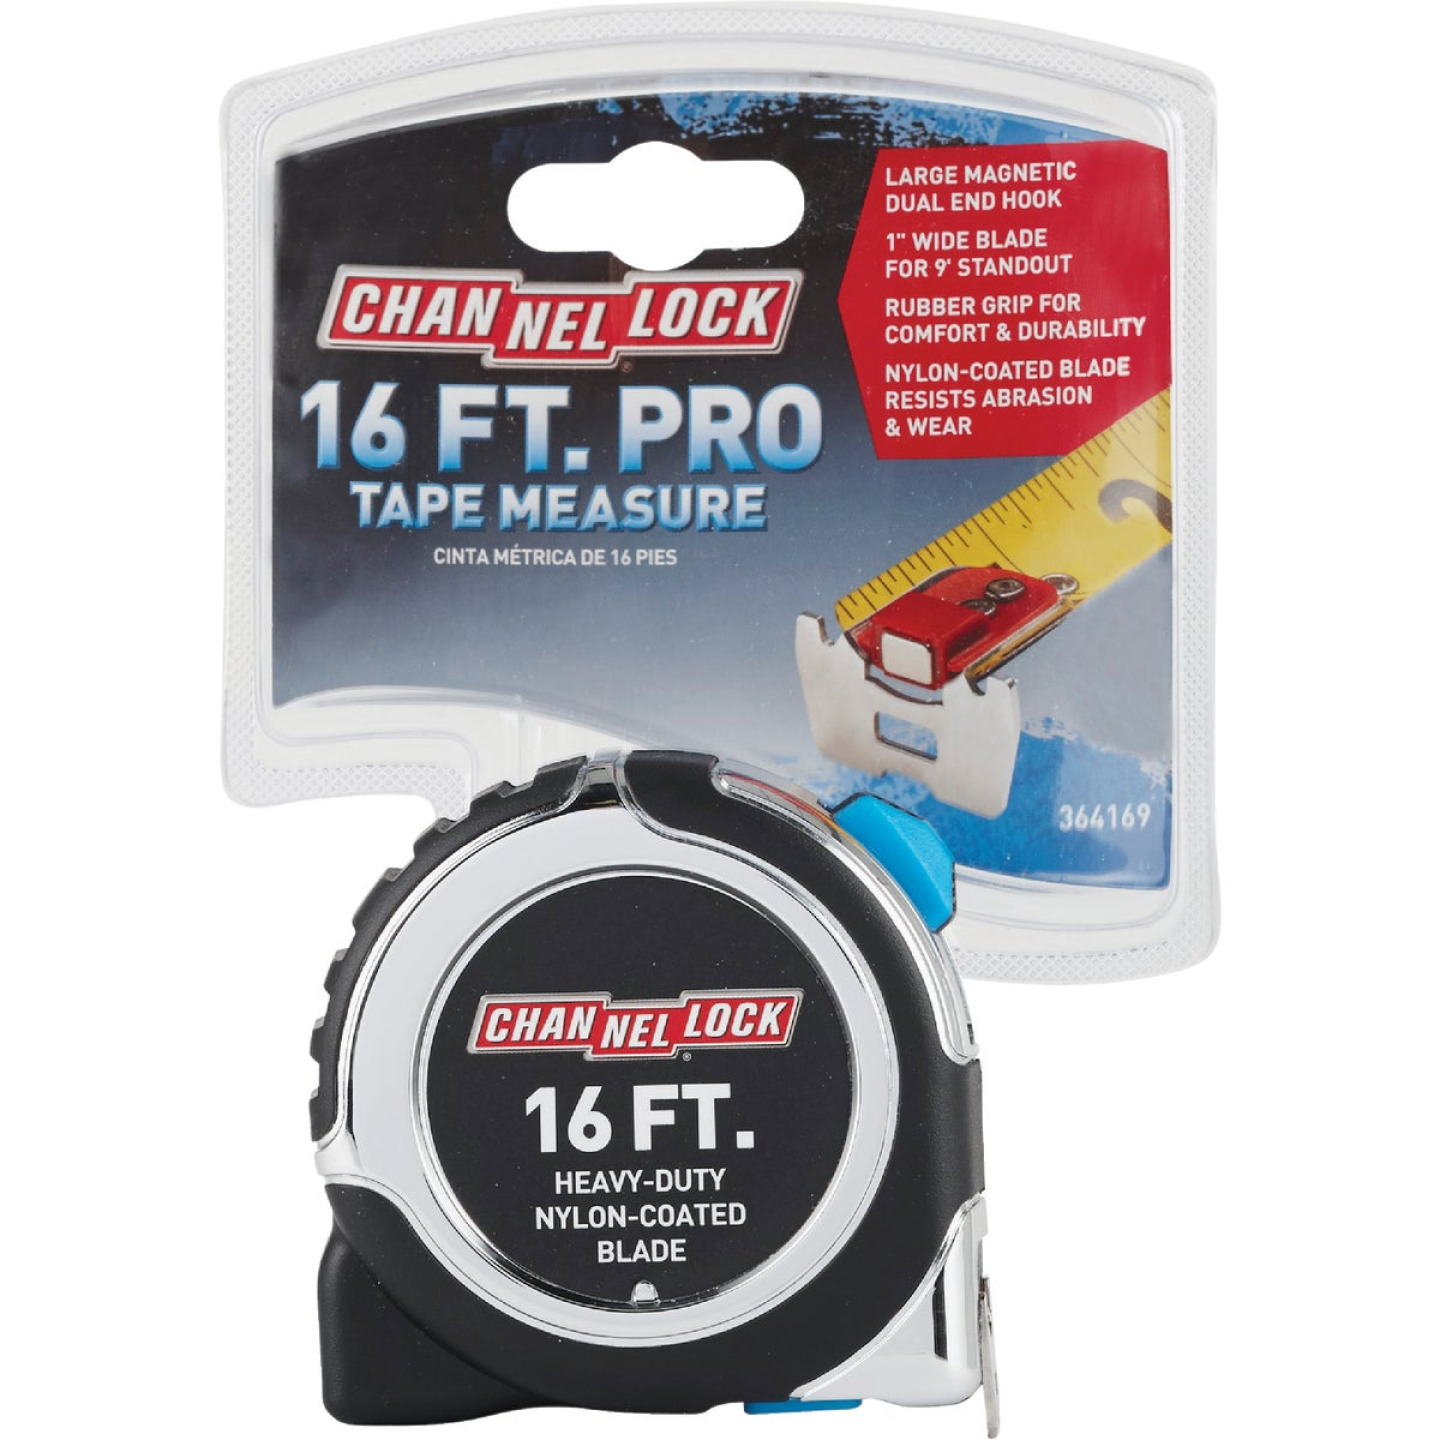 Channellock 16 Ft. Professional Tape Measure Image 2